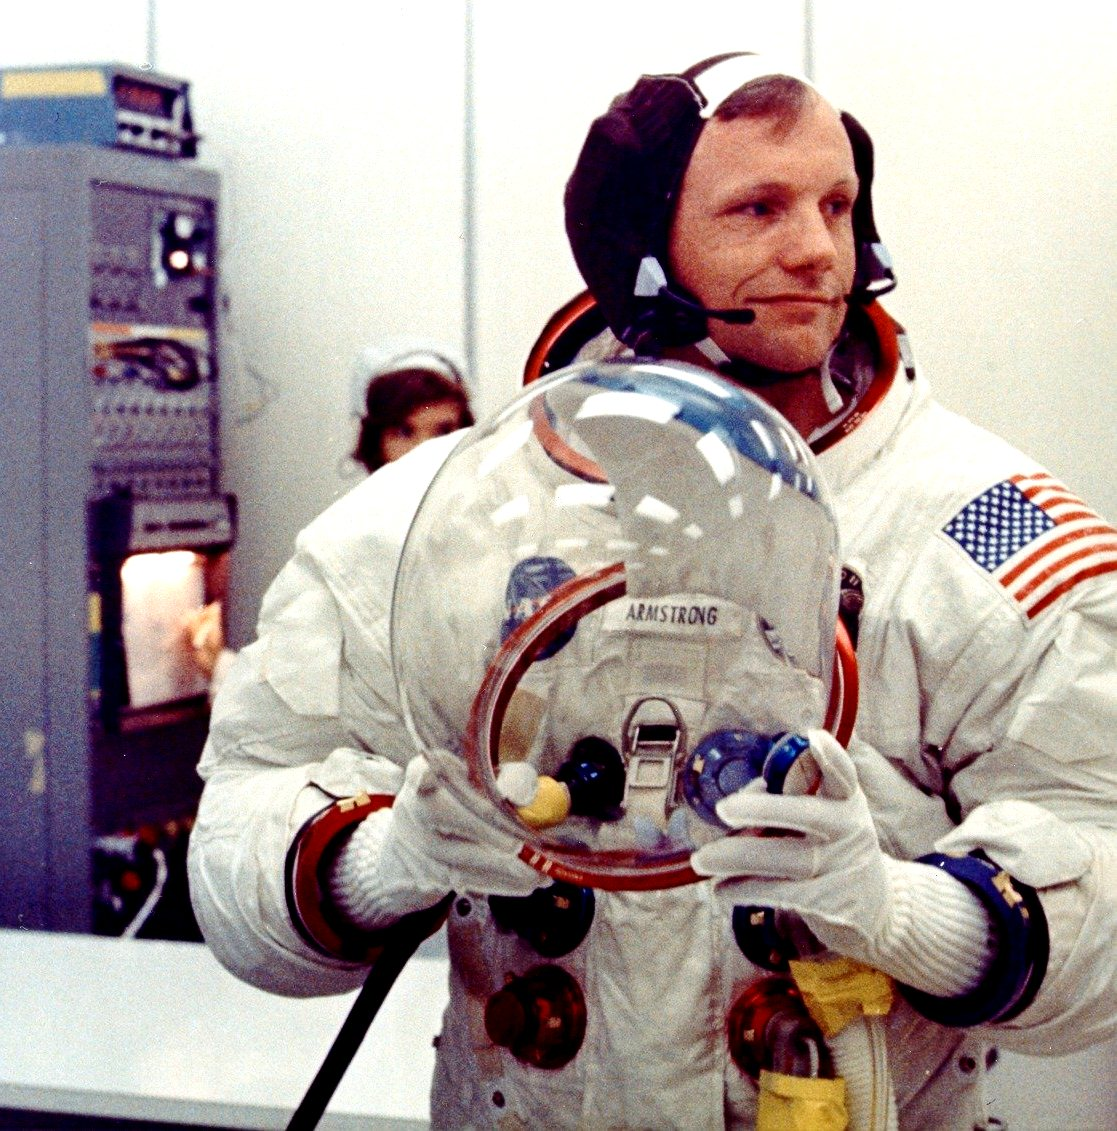 neil armstrong space missions - photo #14